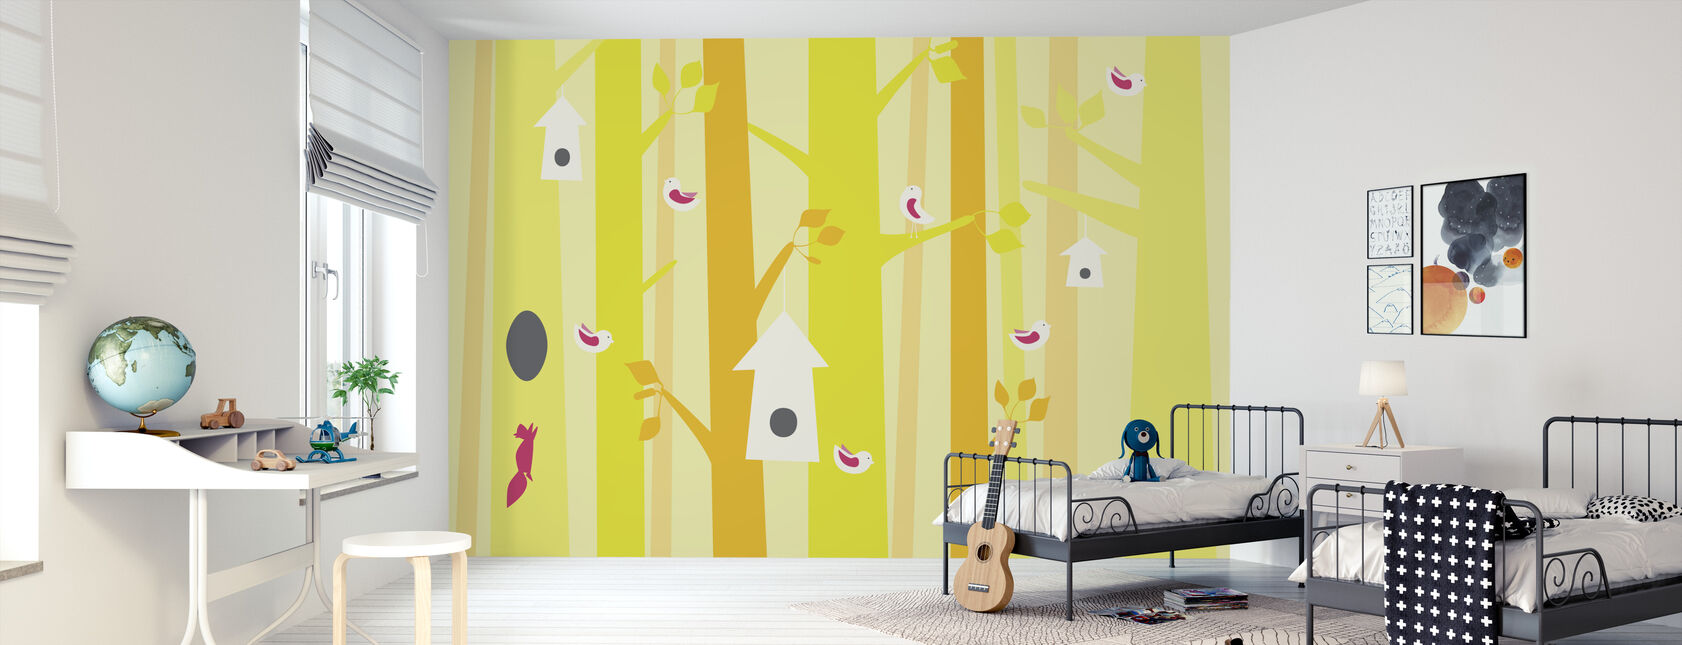 Birdforest - Yellow and Pink - Wallpaper - Kids Room